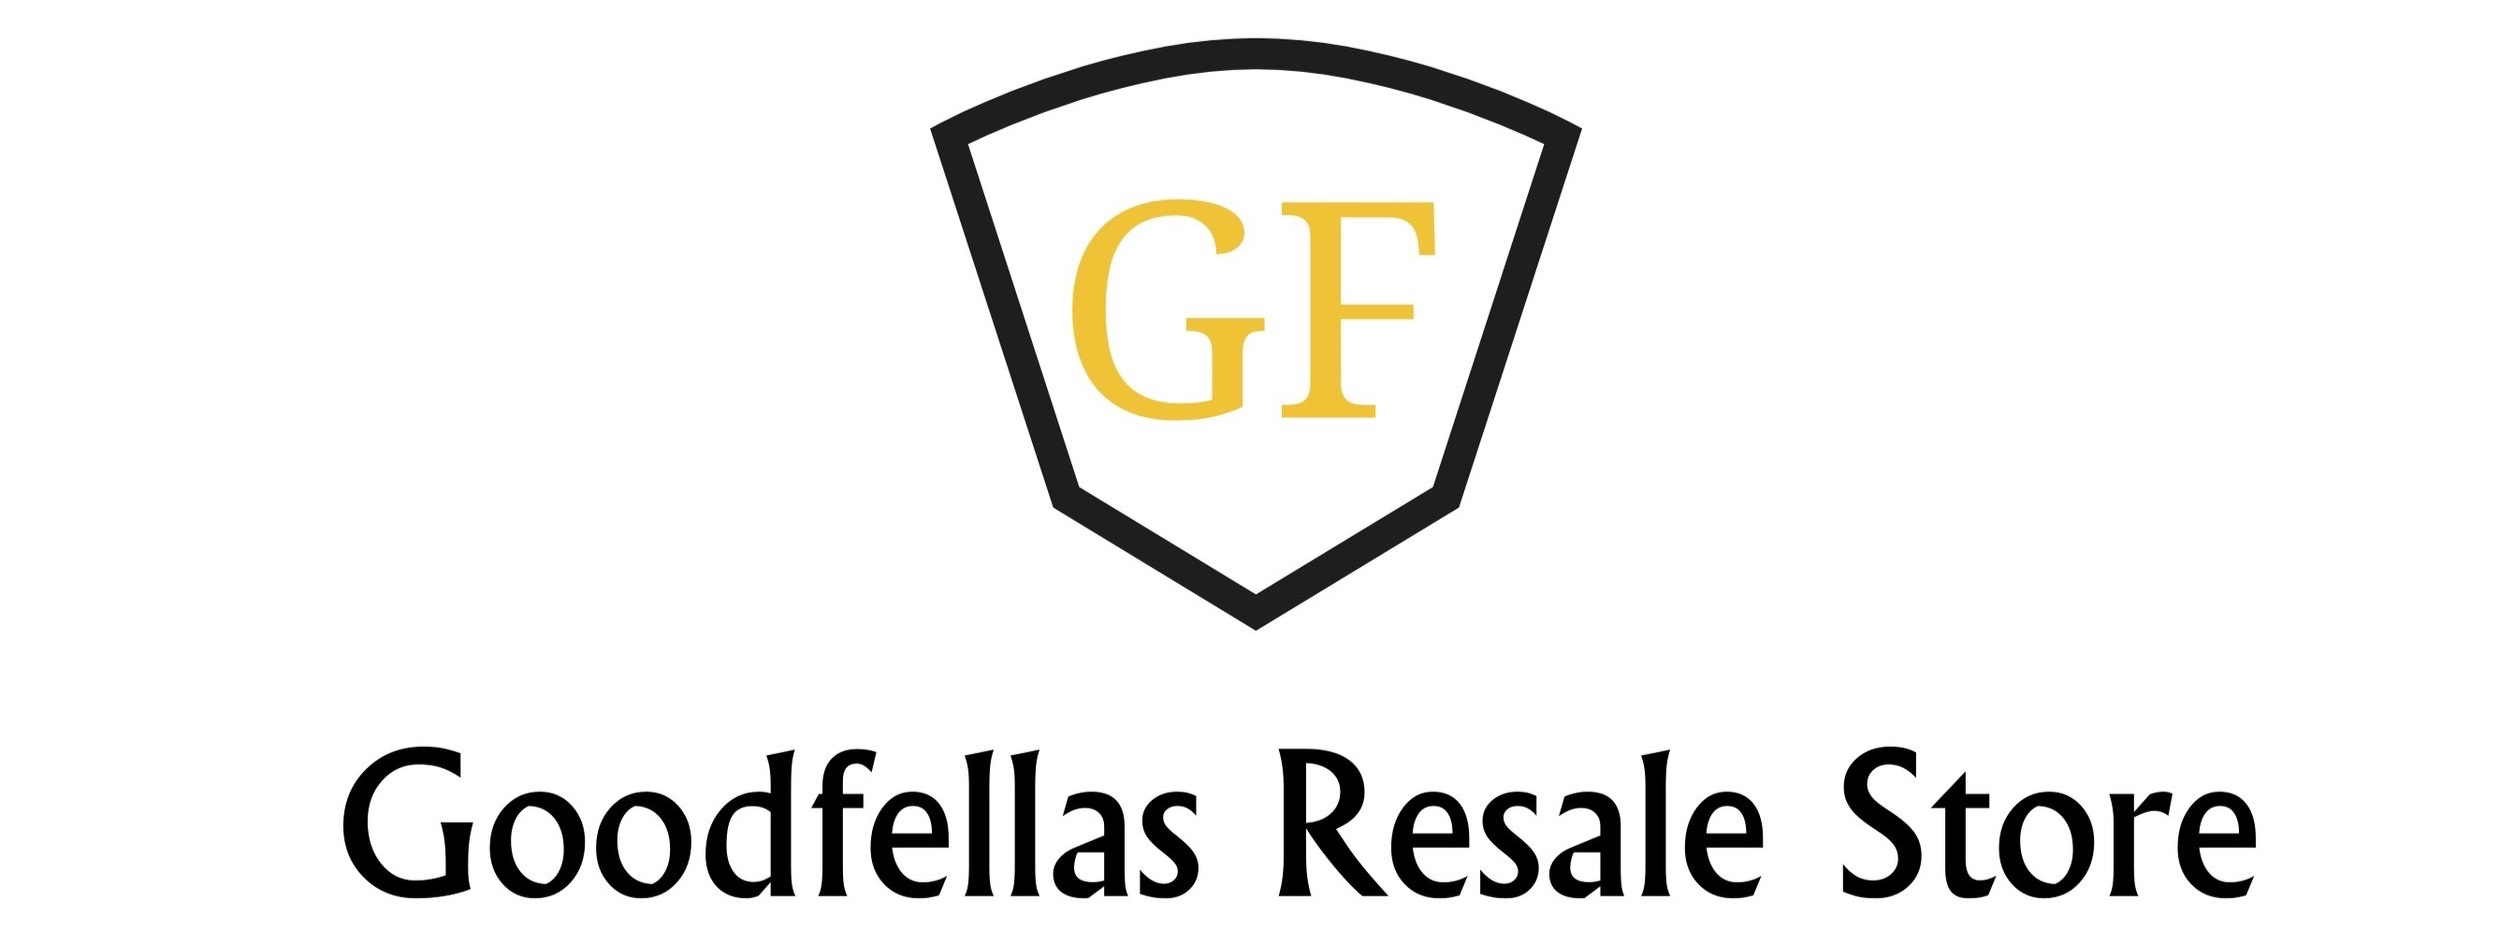 Goodfellas Resale Store